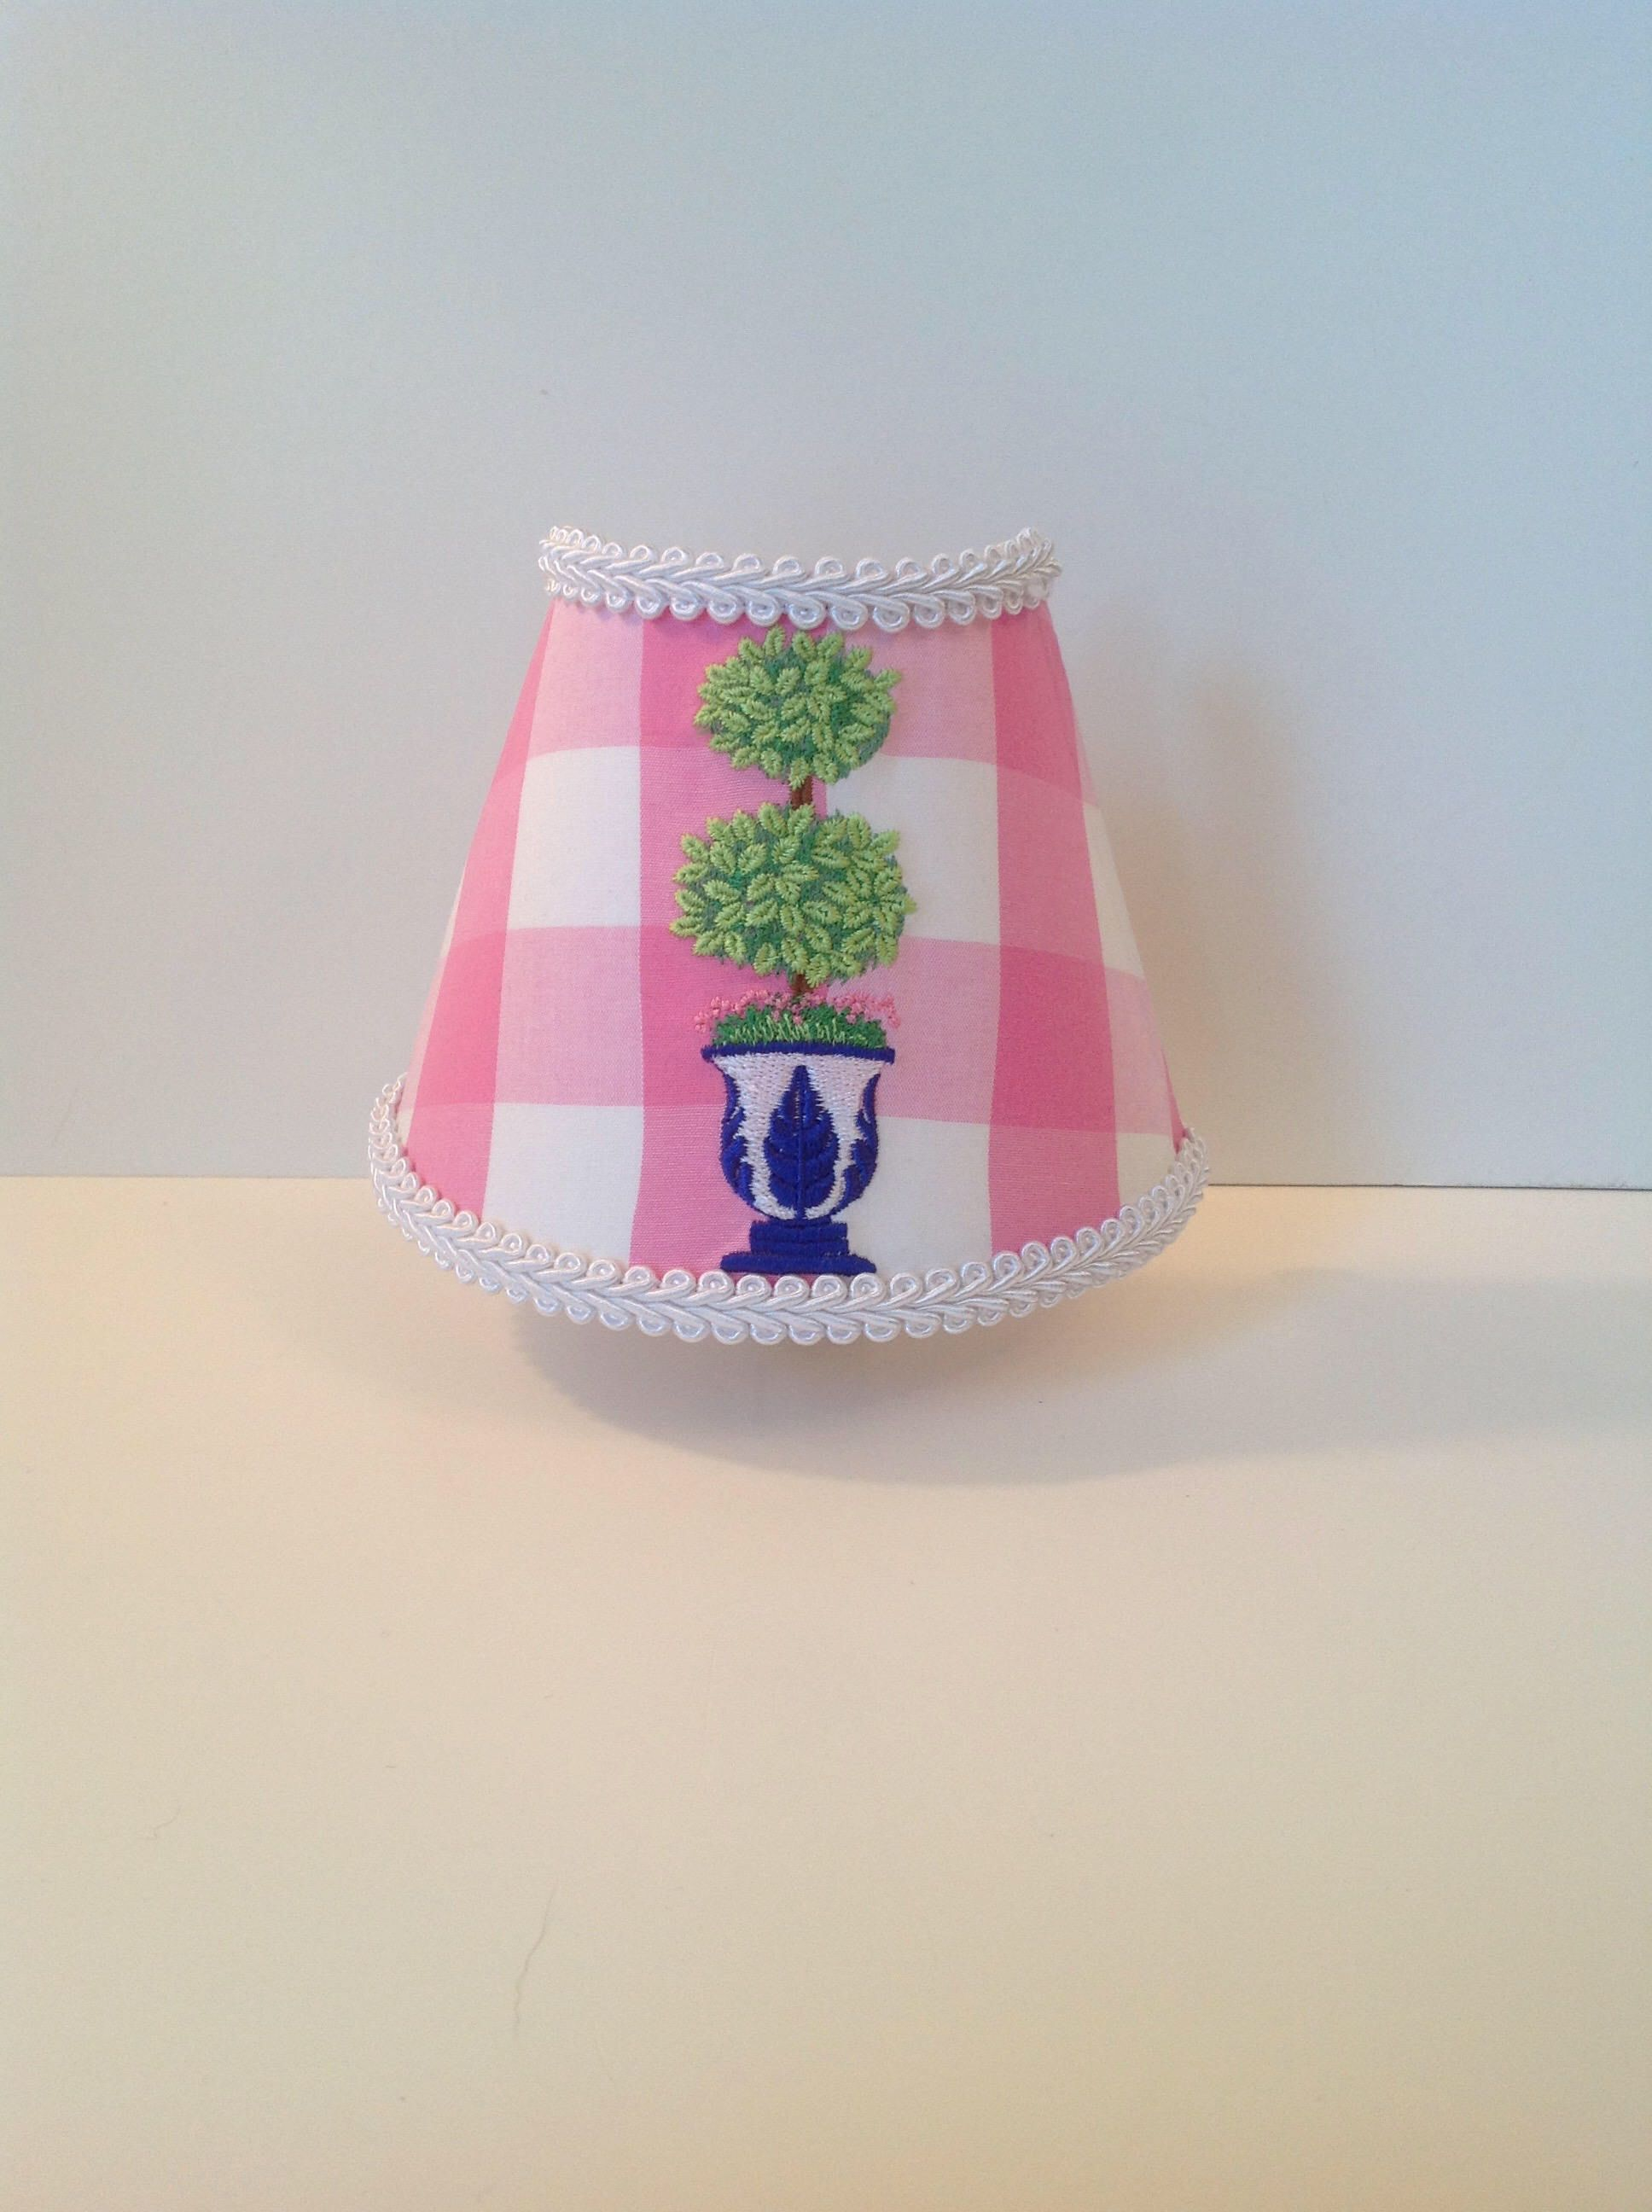 Topiary Night Light (pink and white gingham, blue and